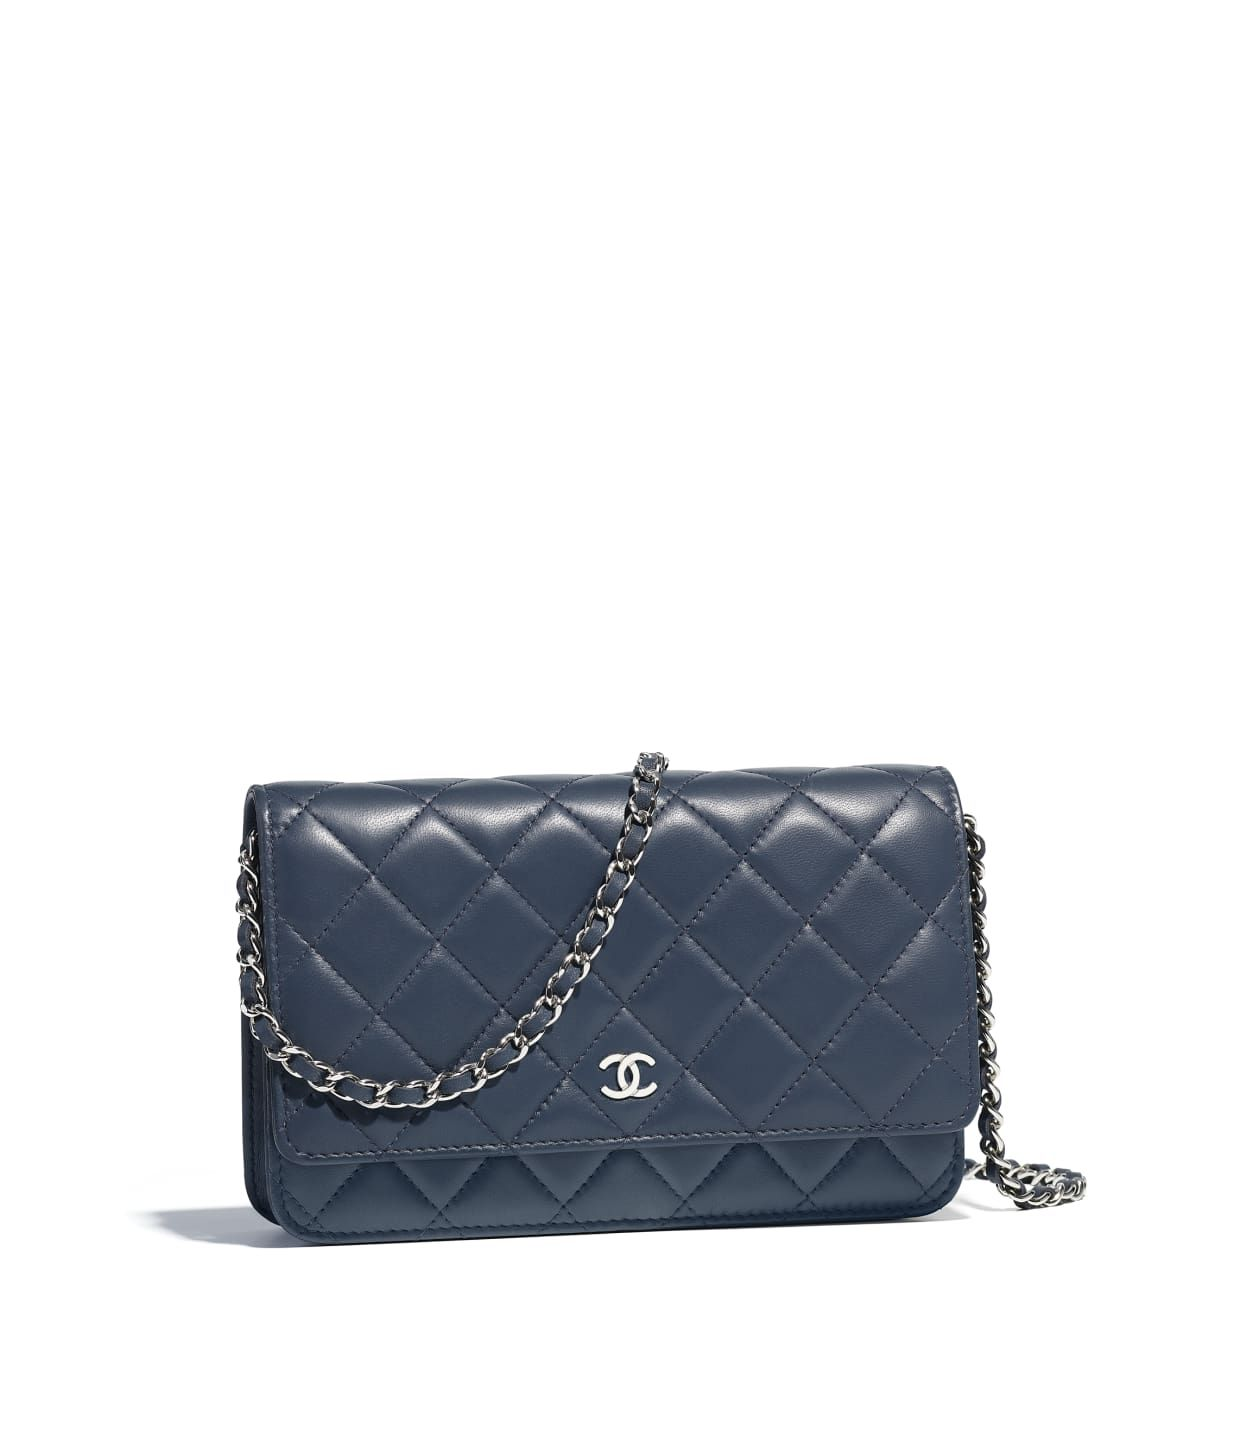 5cc582d036eb Discover the CHANEL Lambskin & Silver-Tone Metal Blue Classic Wallet on  Chain, and